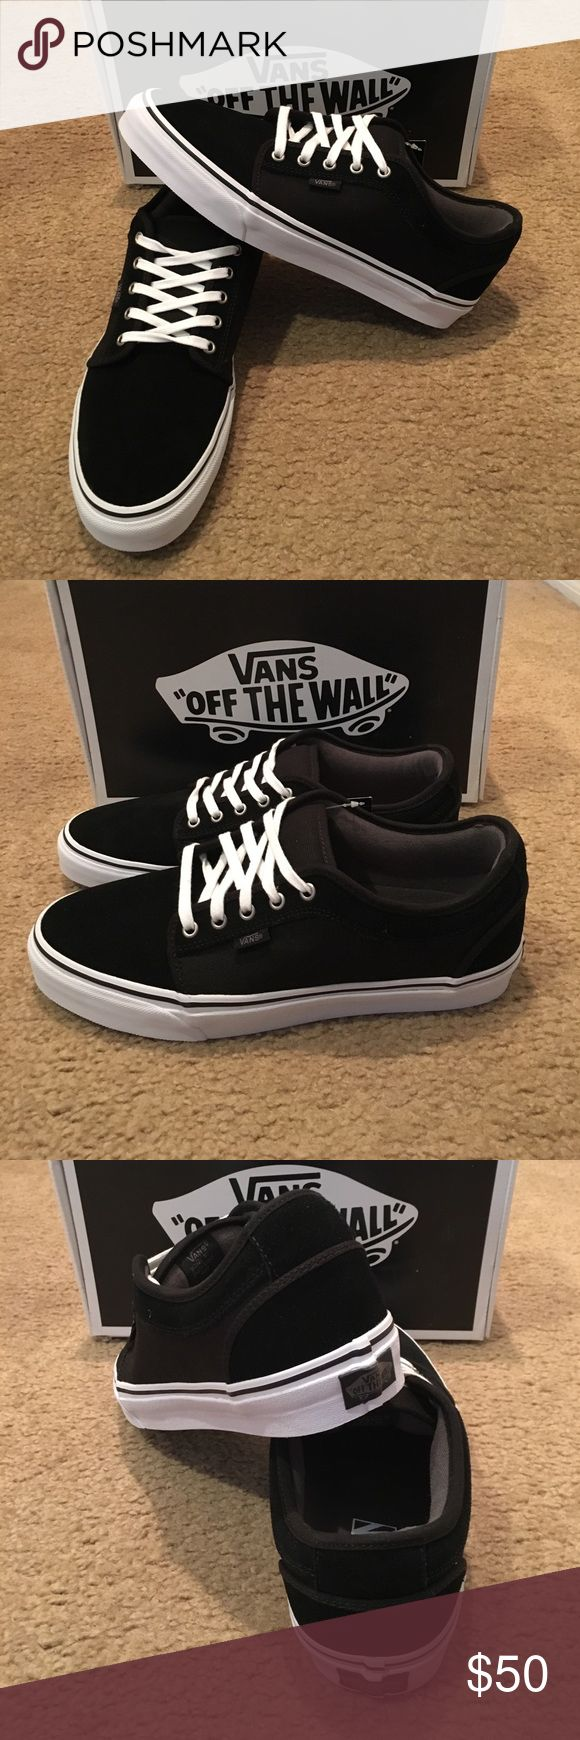 Vans Chukka Low New in box. Black/pewter/white Vans Shoes Sneakers